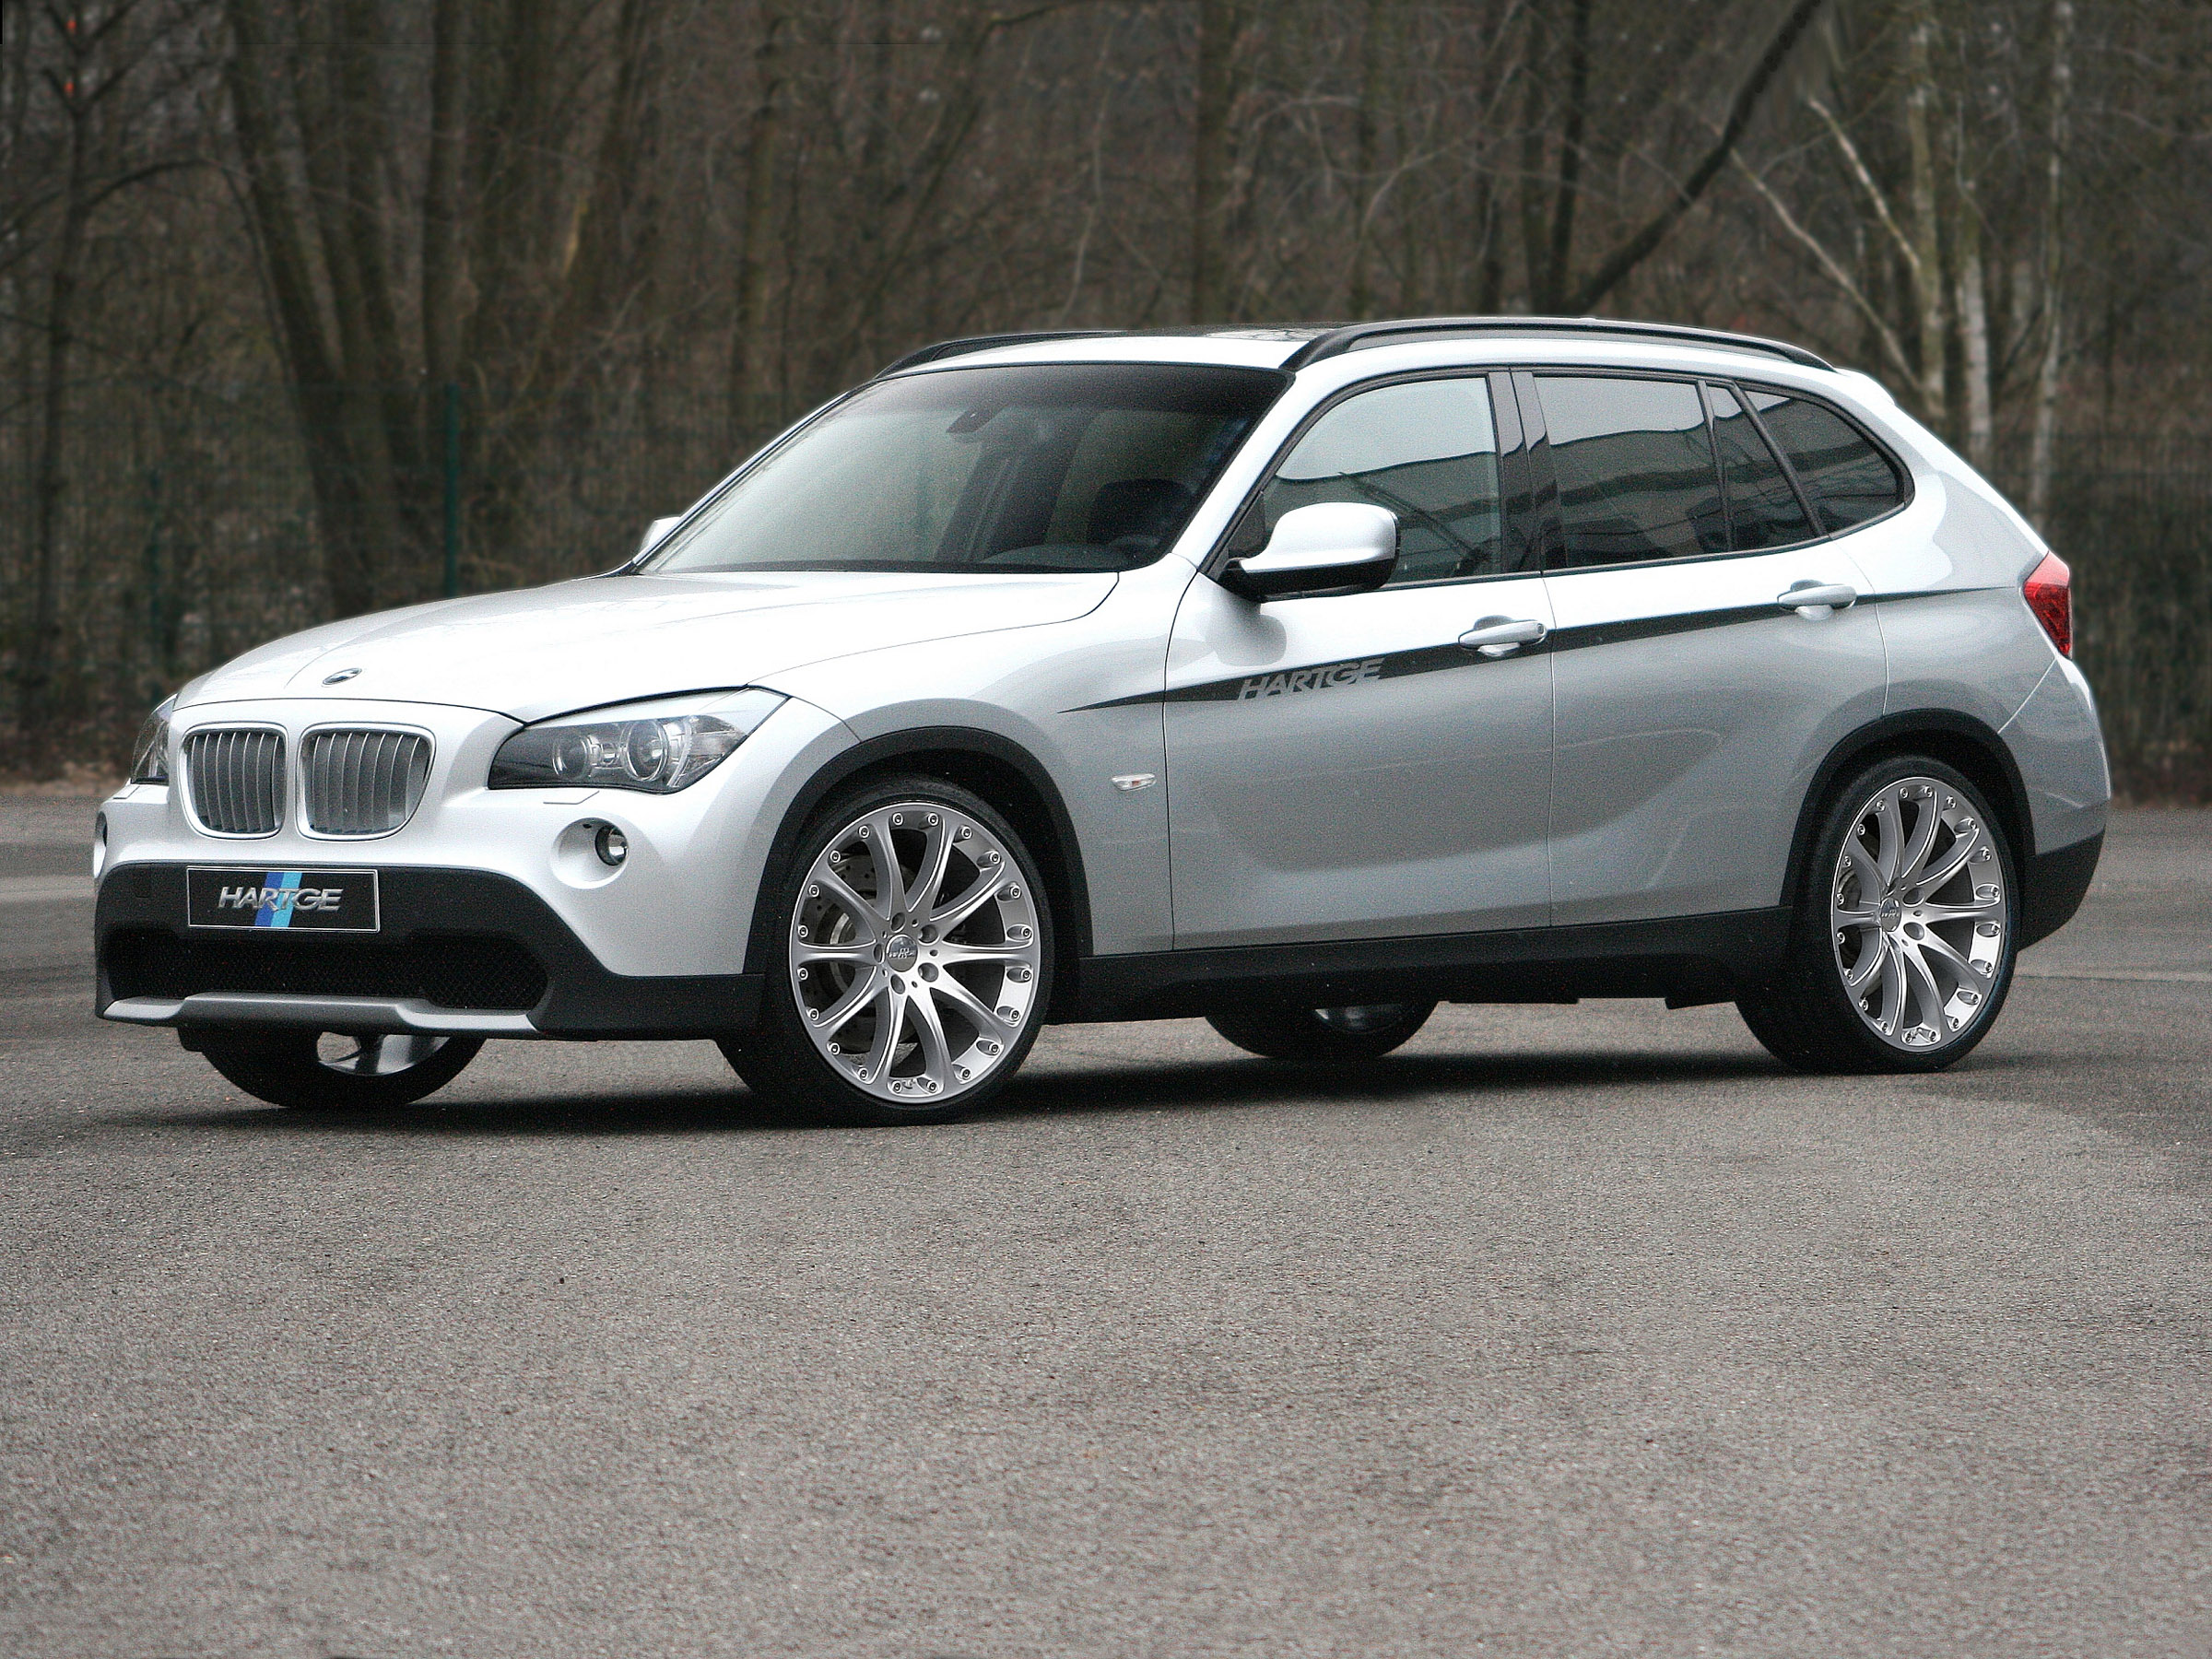 Hartge With More Power For The Bmw X1